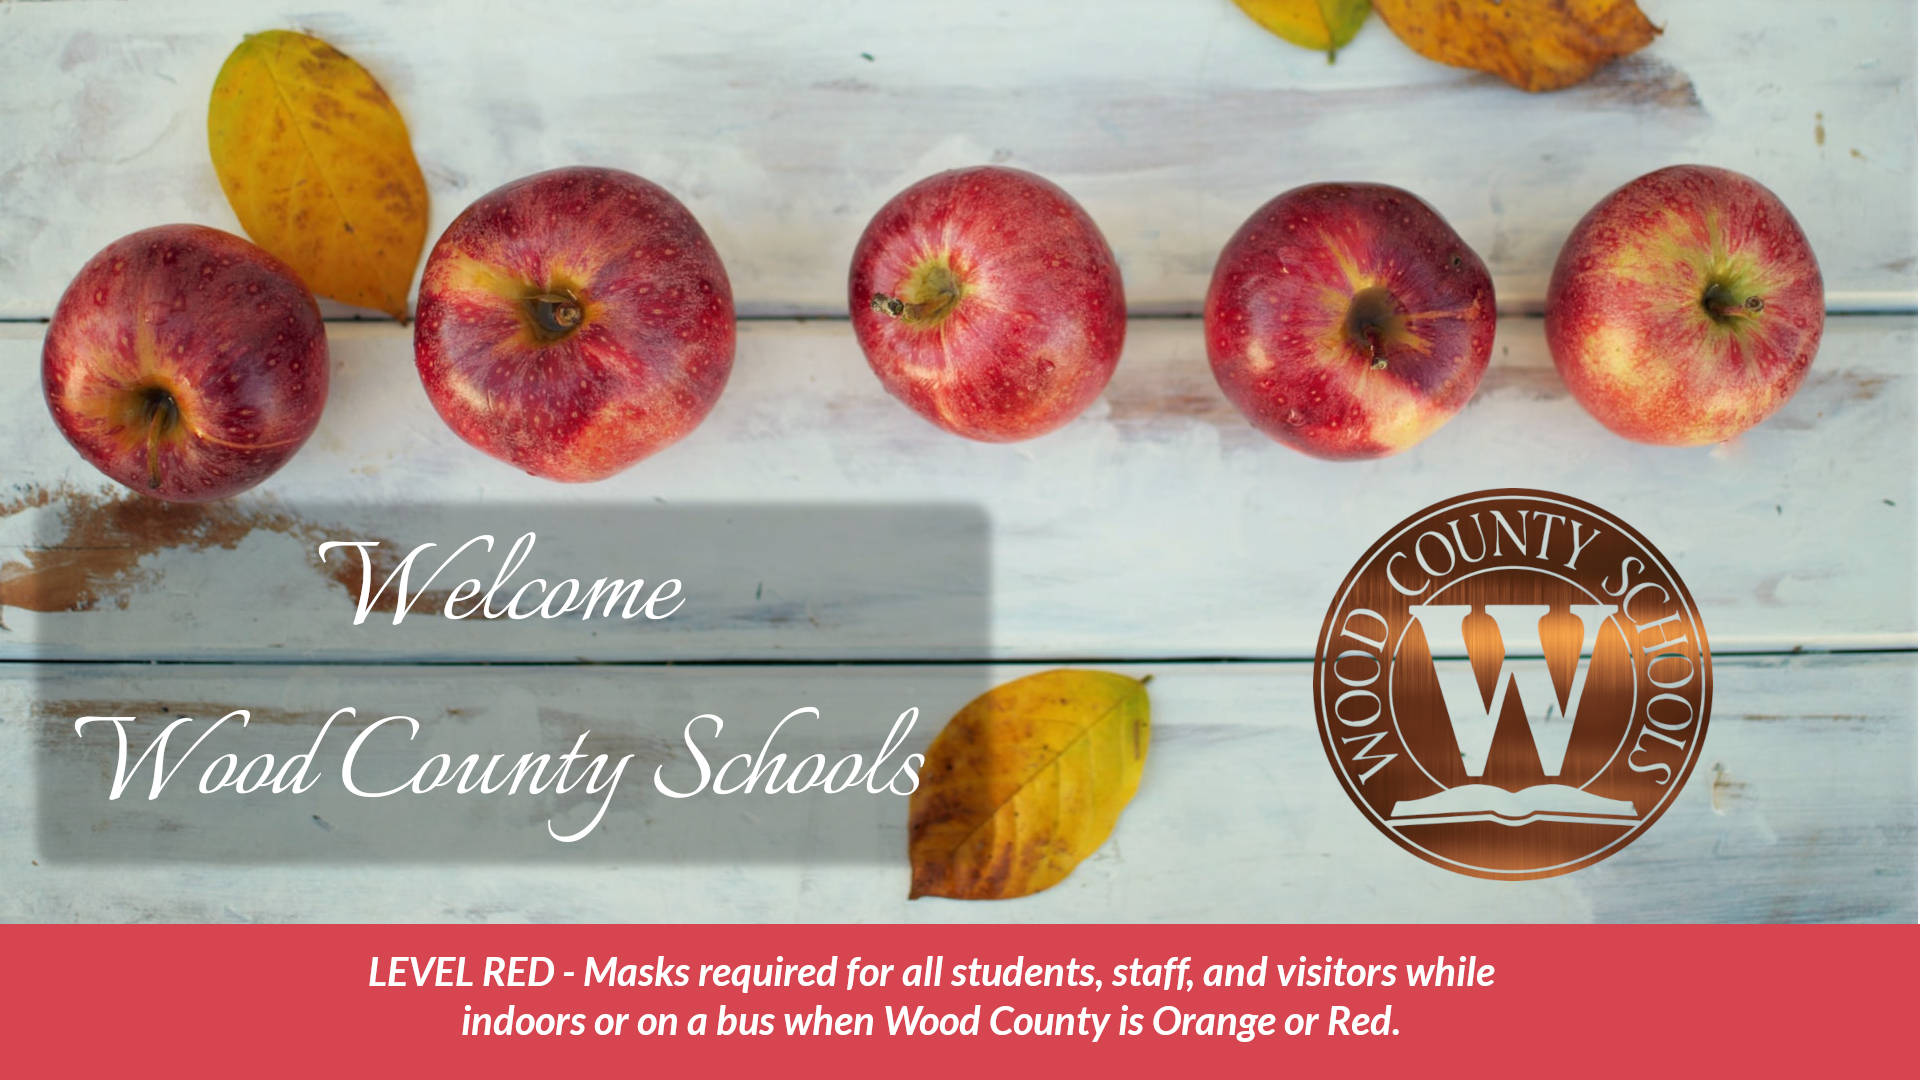 welcome to wood county schools with red apples and fall colored leaves